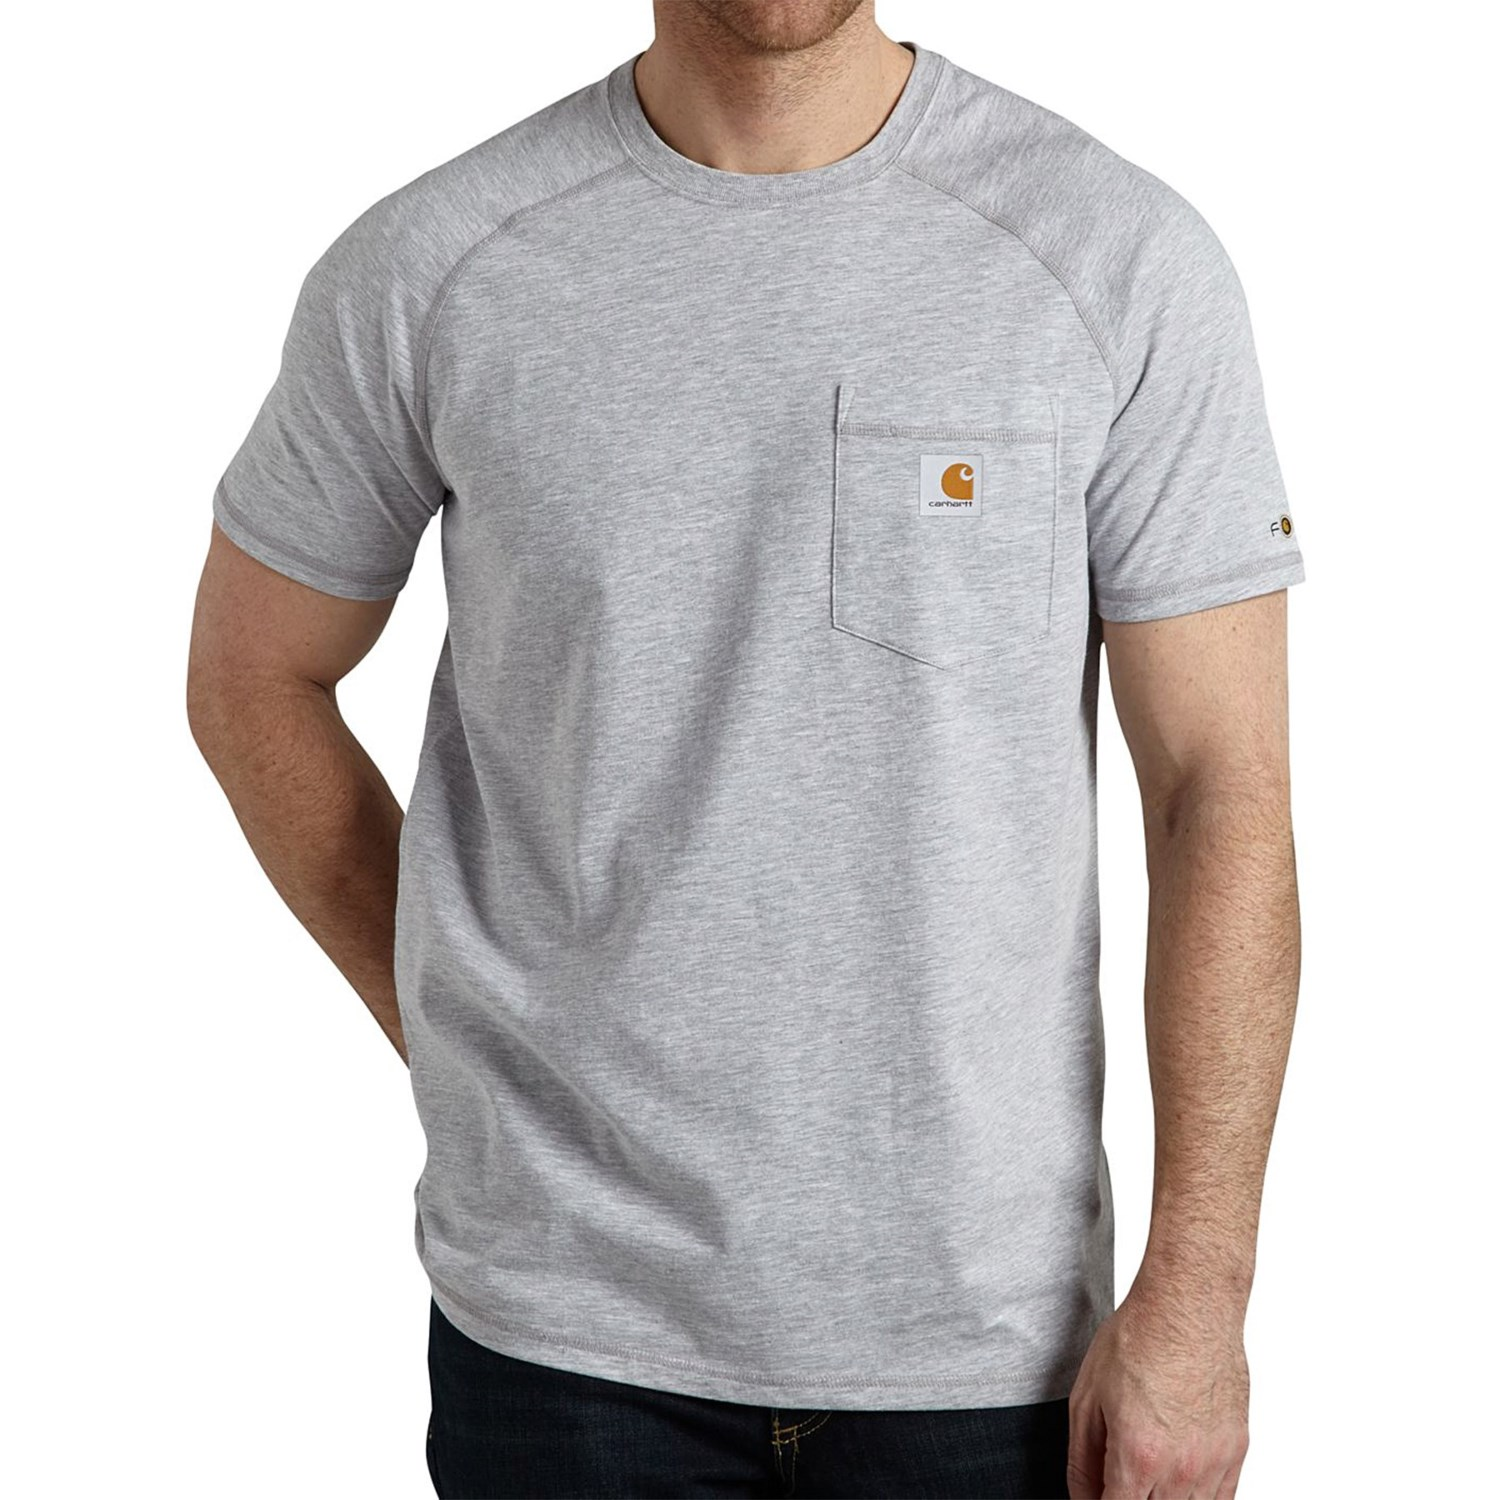 Carhartt force t shirt for big and tall men 8734g for Mens tall t shirts